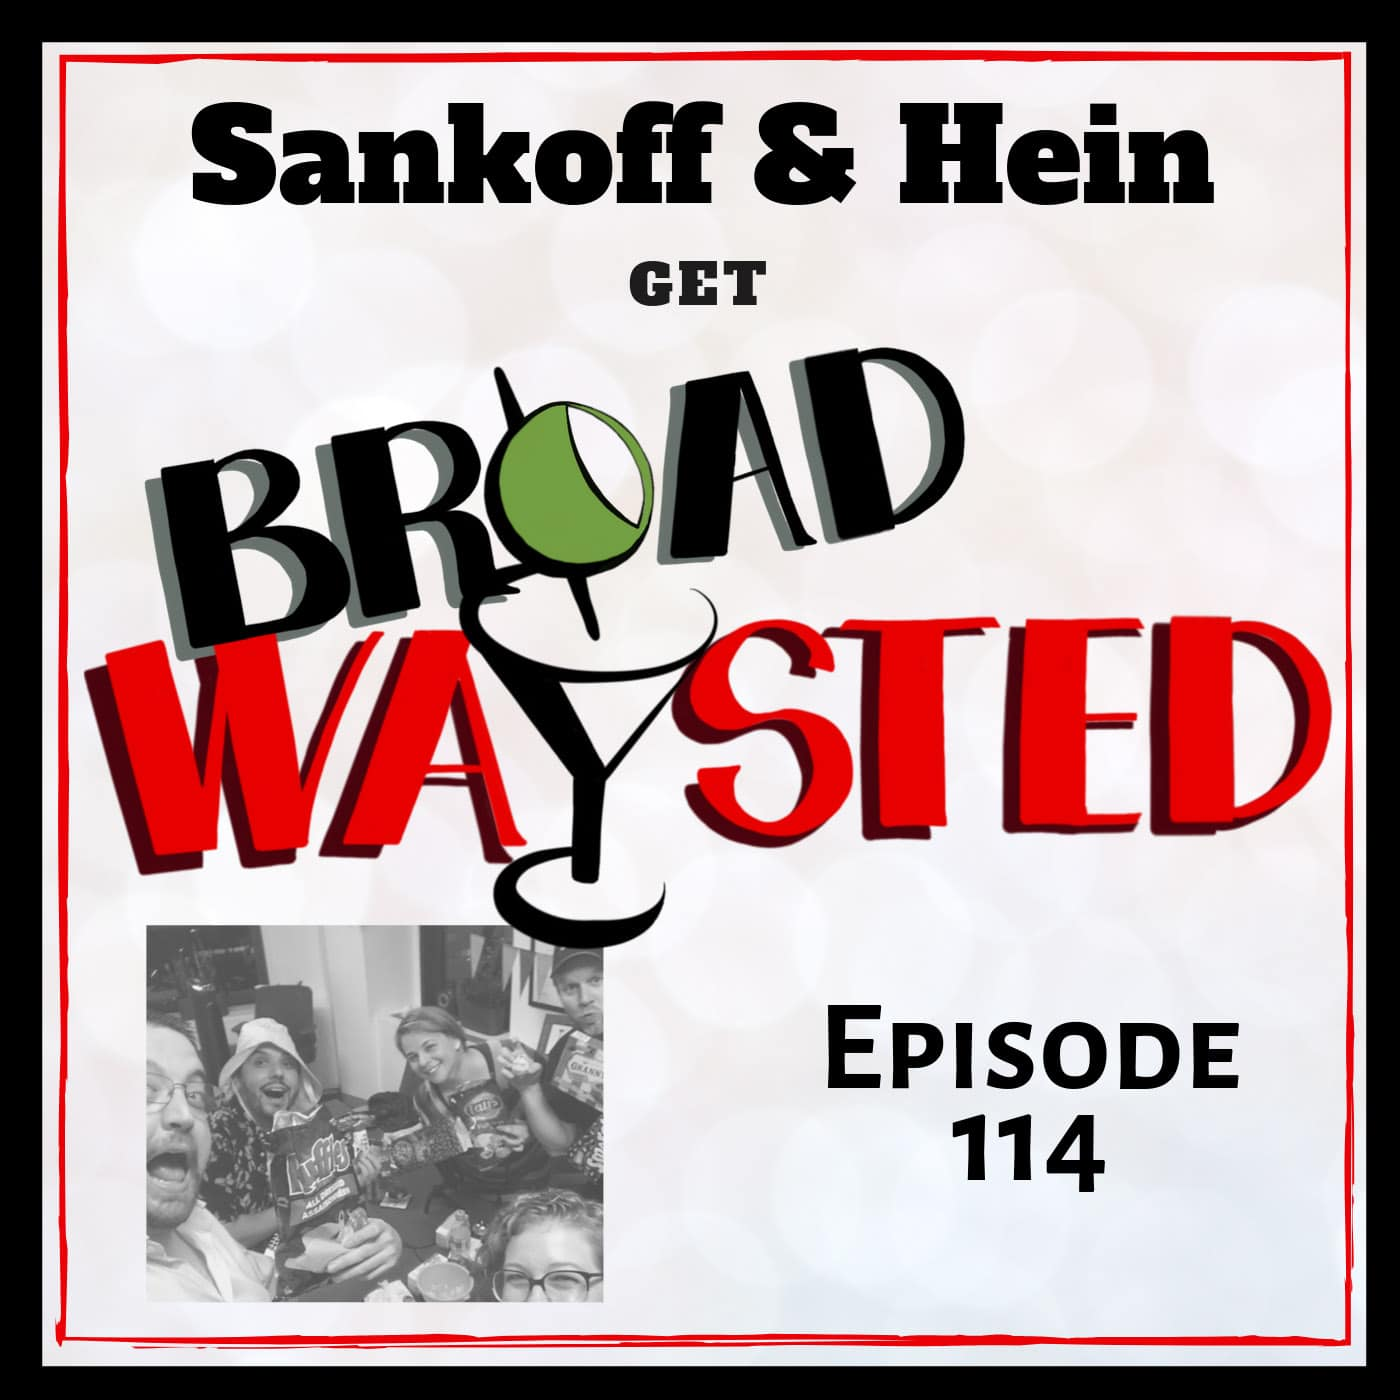 Broadwaysted Ep 114 Sankoff and Hein